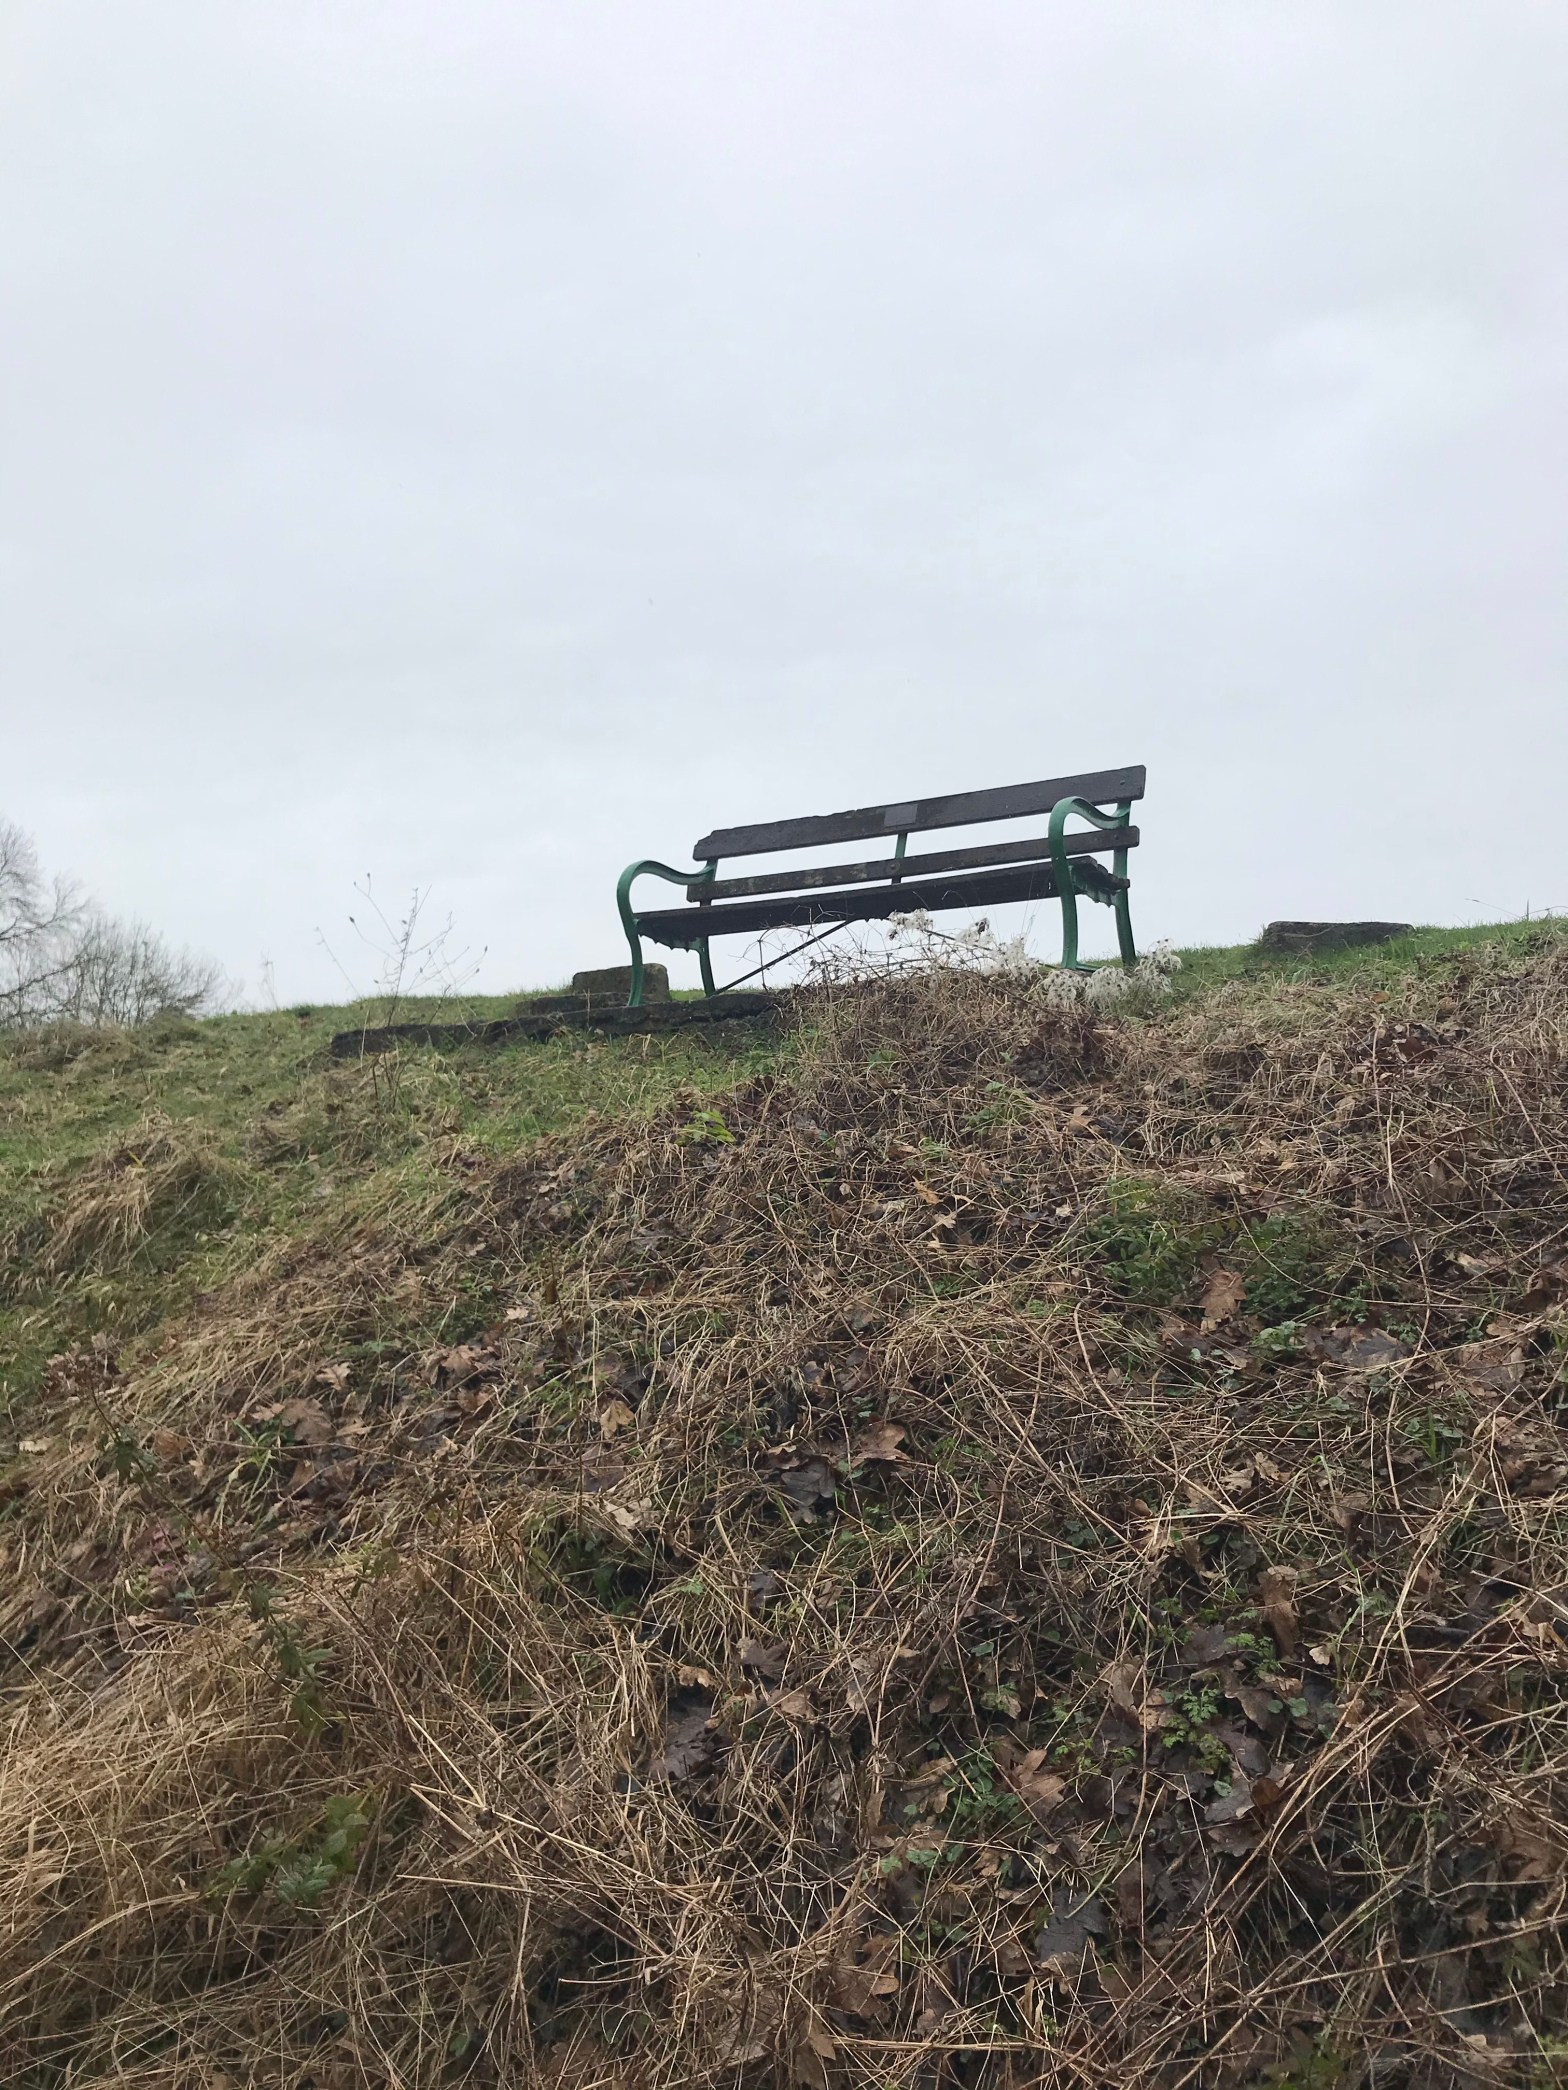 the image is of a bench on sparse land in the middle of winter